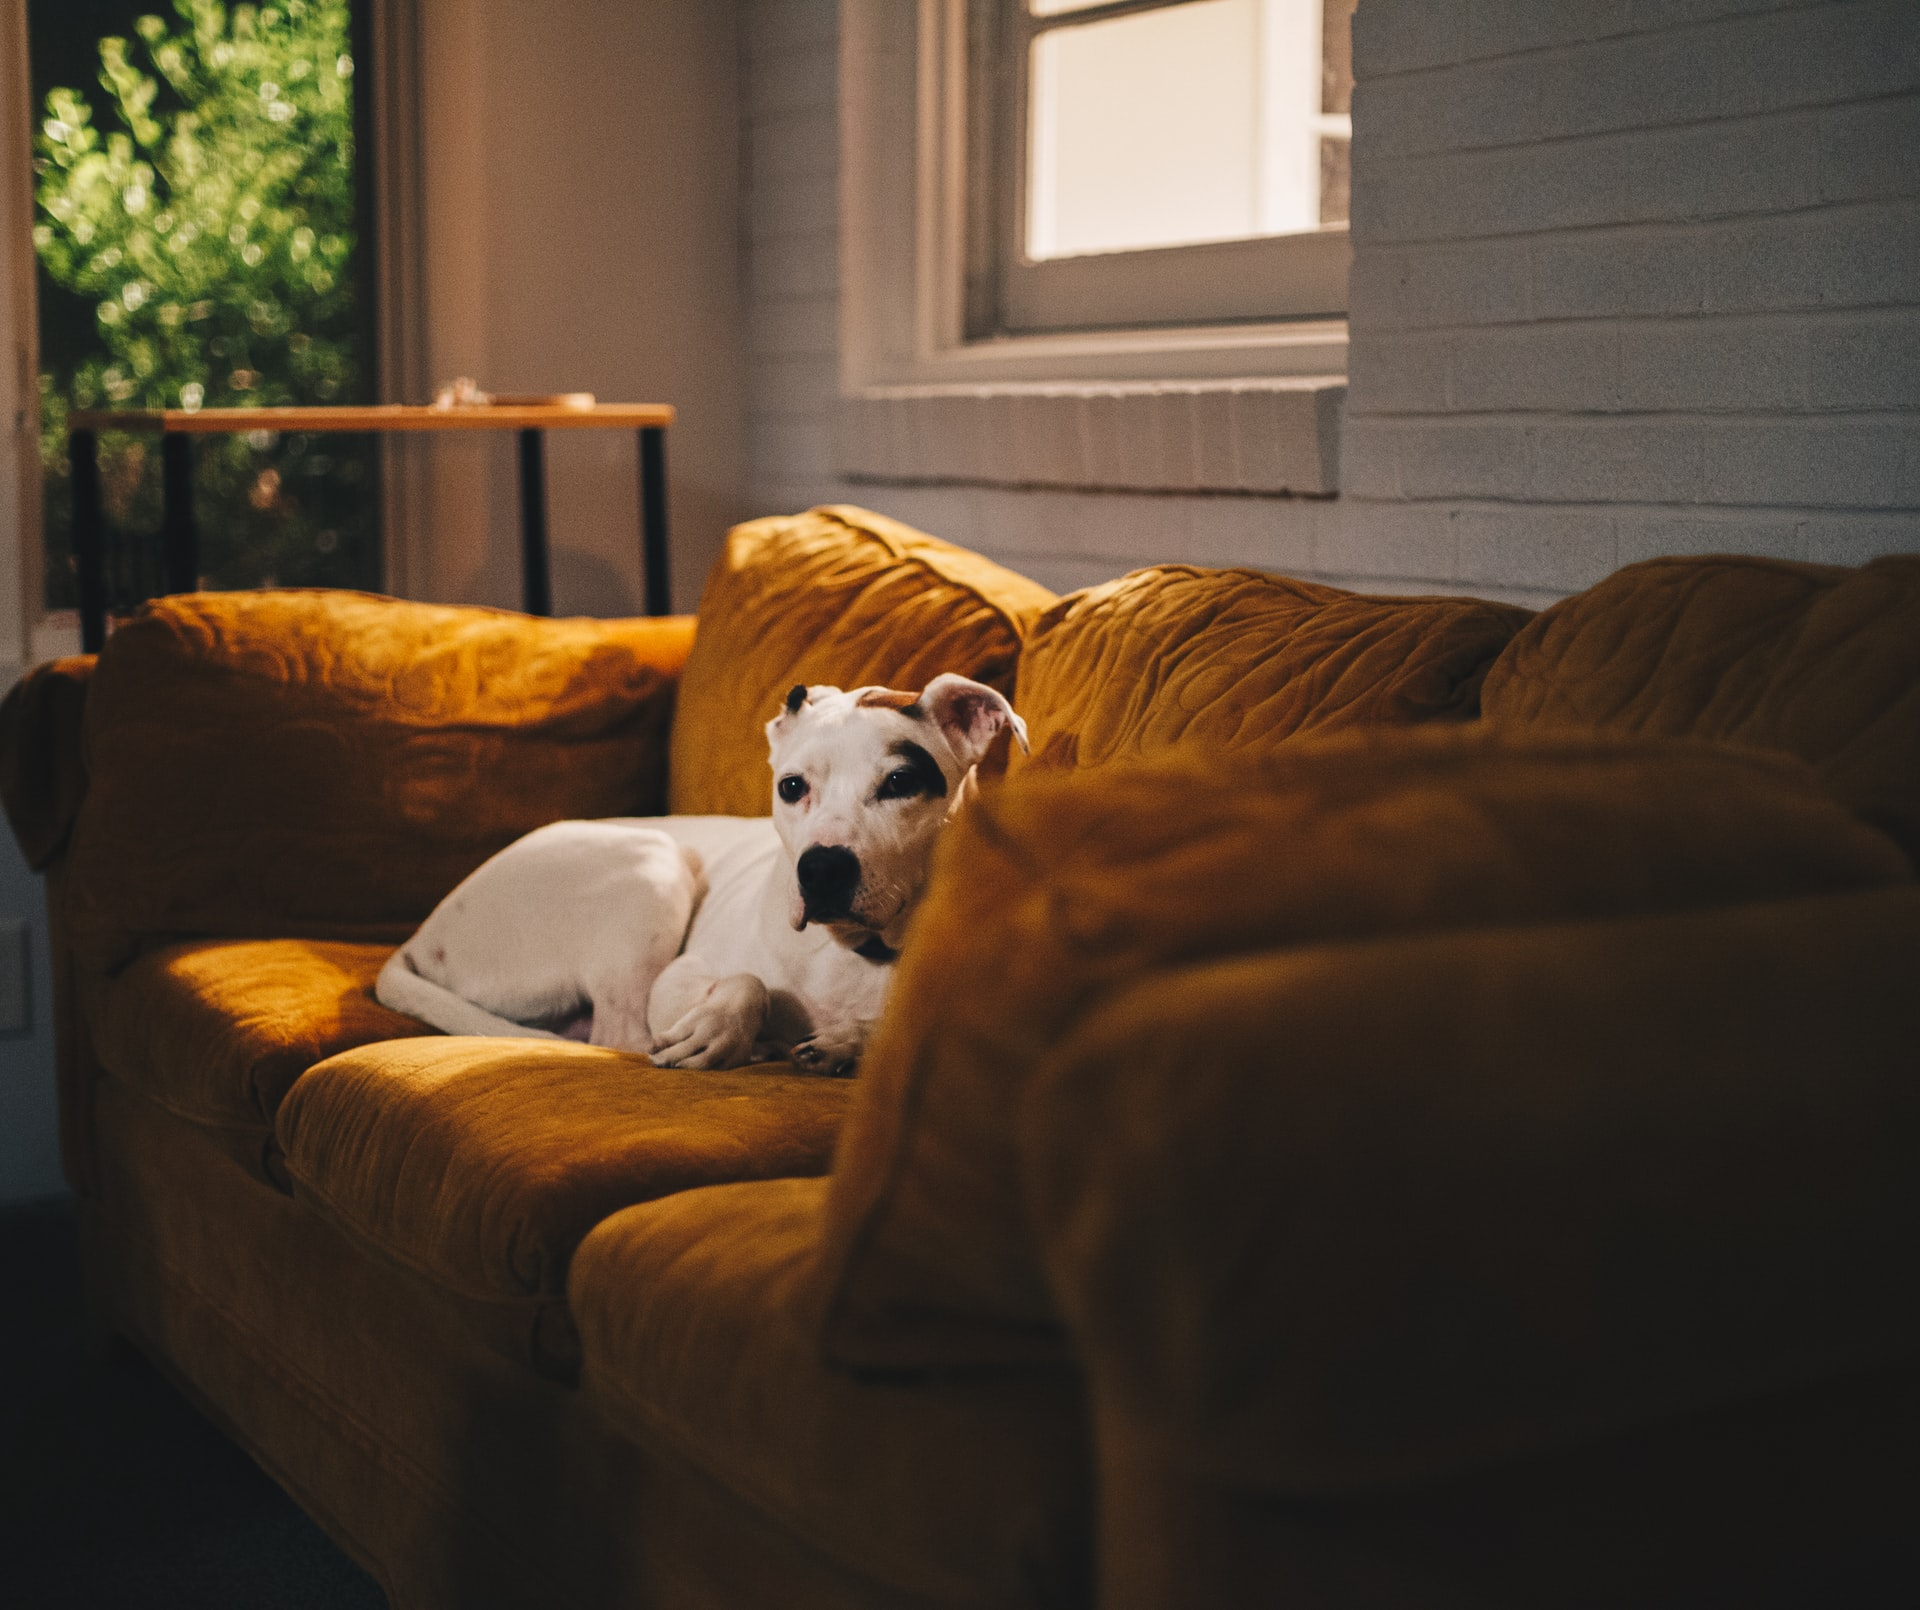 home dental care for pets - dog on yellow couch